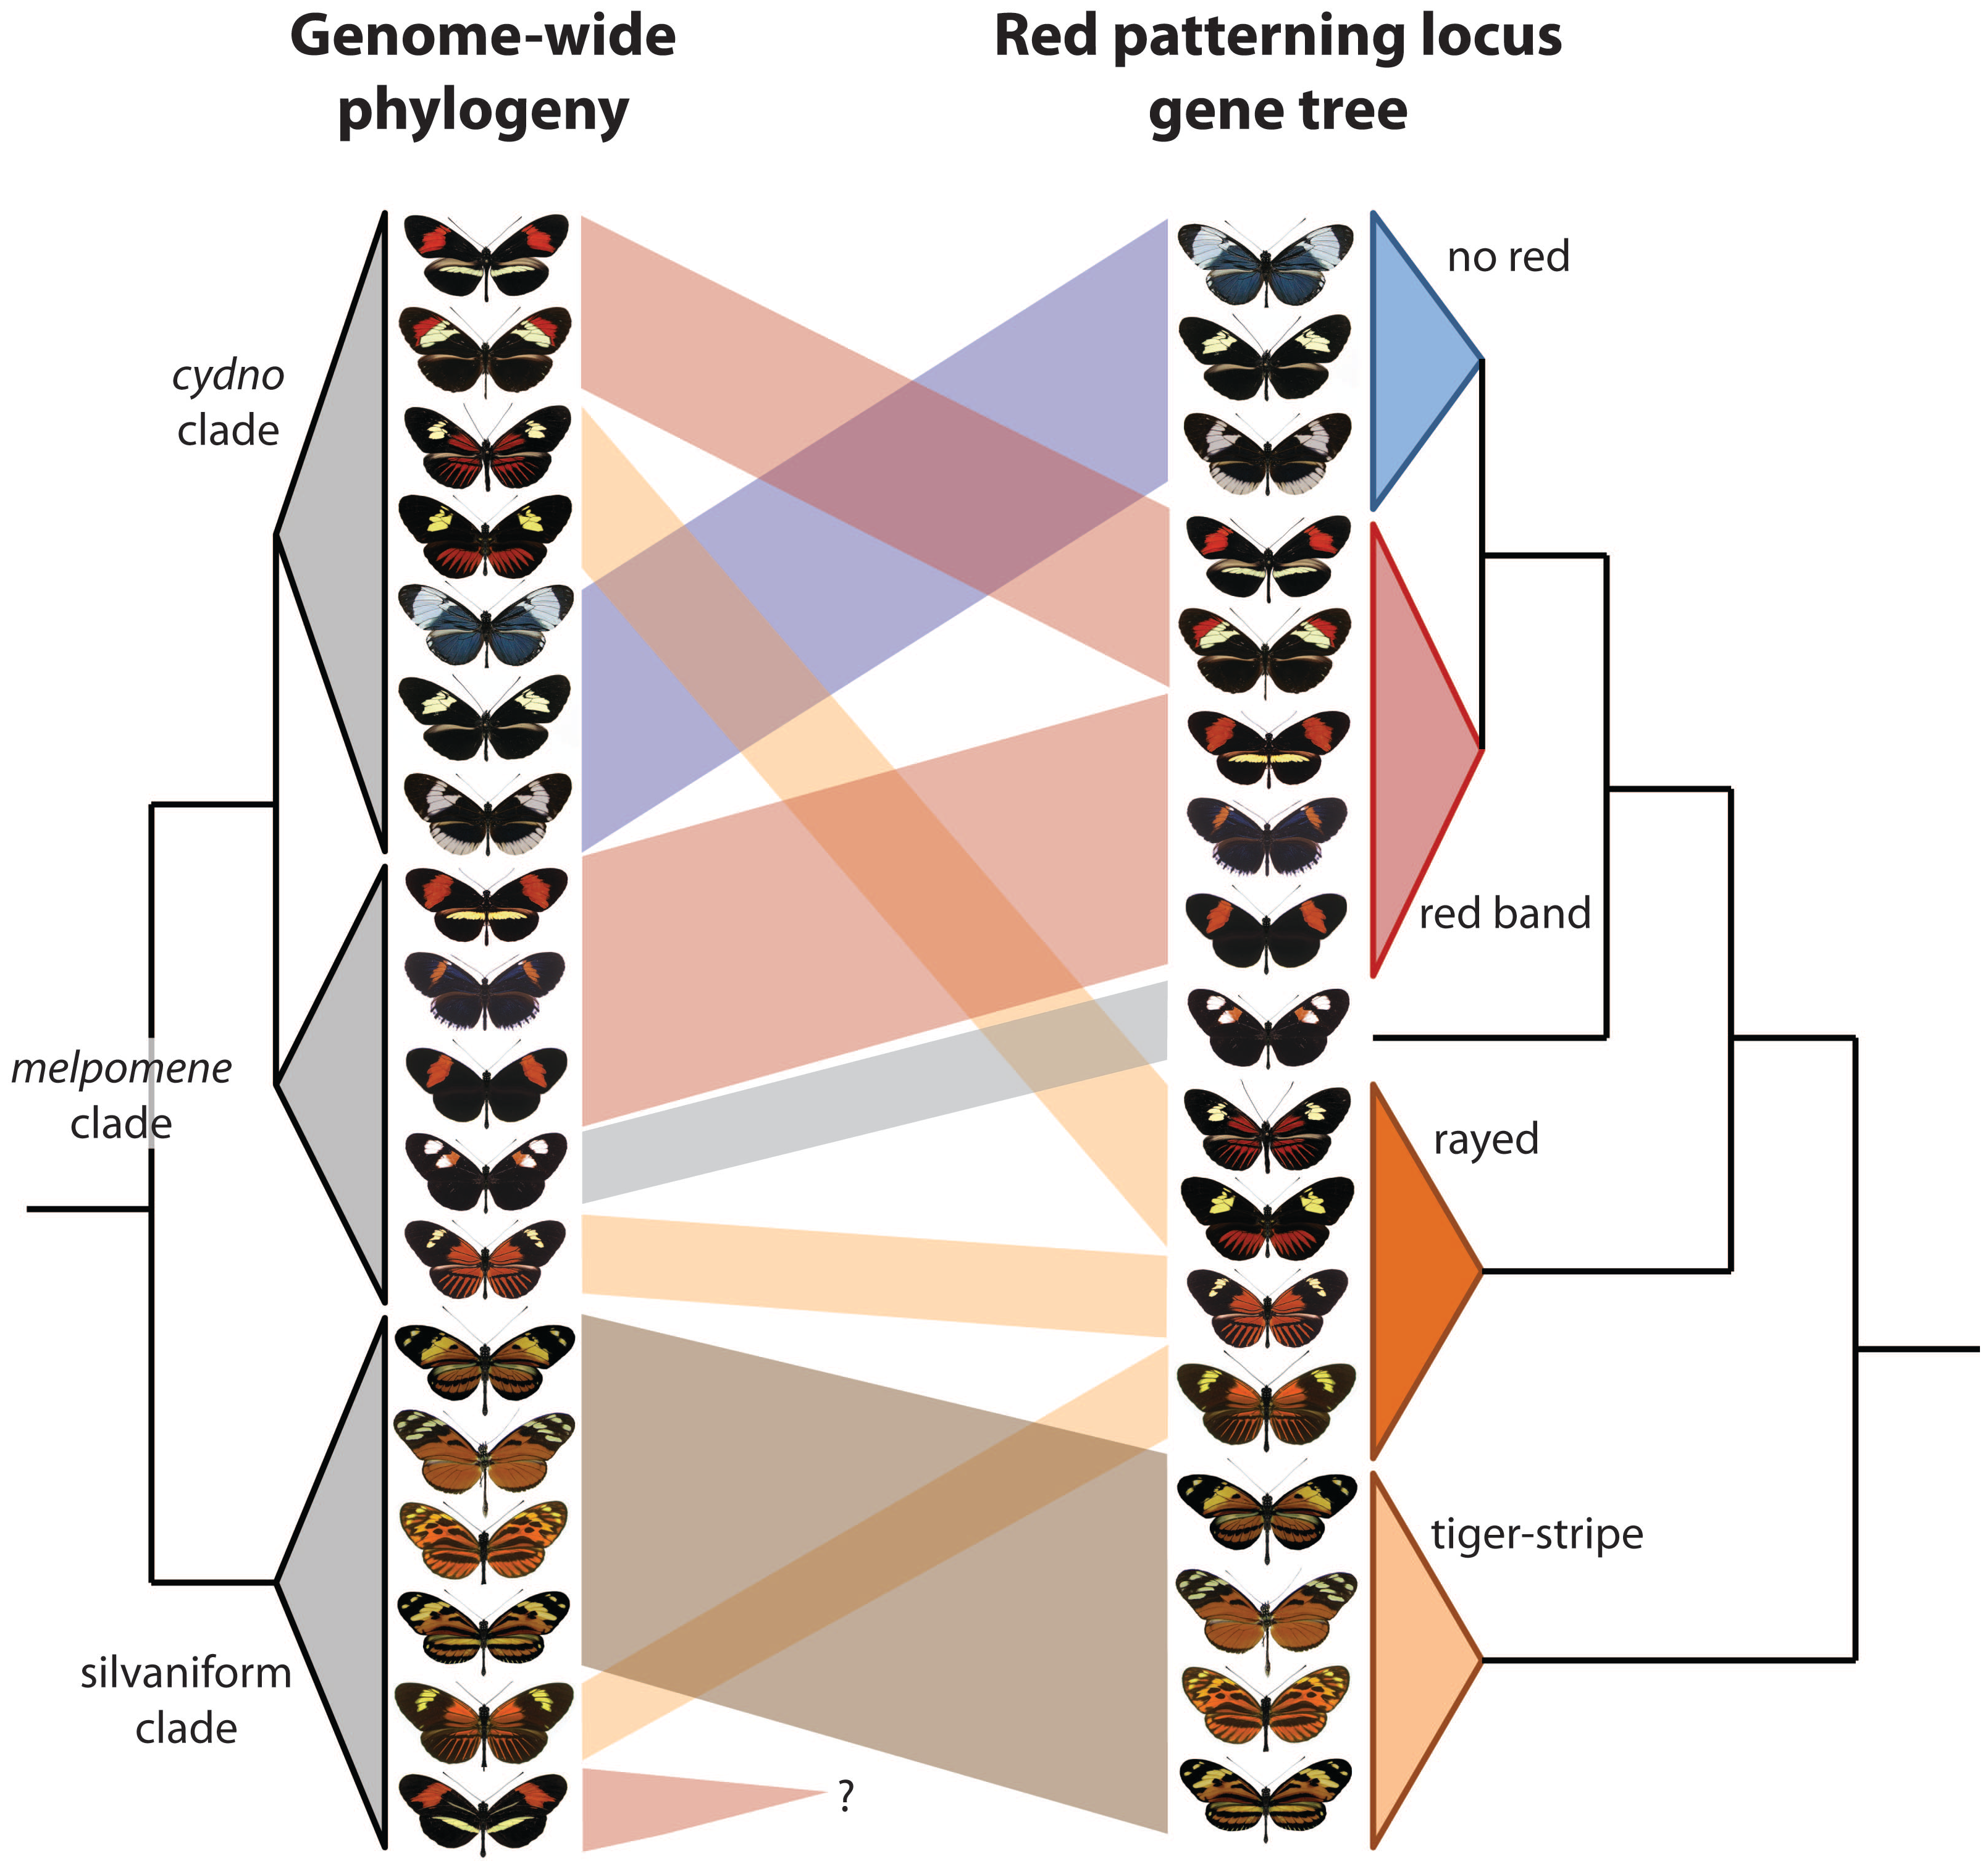 Two new papers show that wing patterning has been swapped among <i>Heliconius</i> butterfly species via introgressive hybridization.